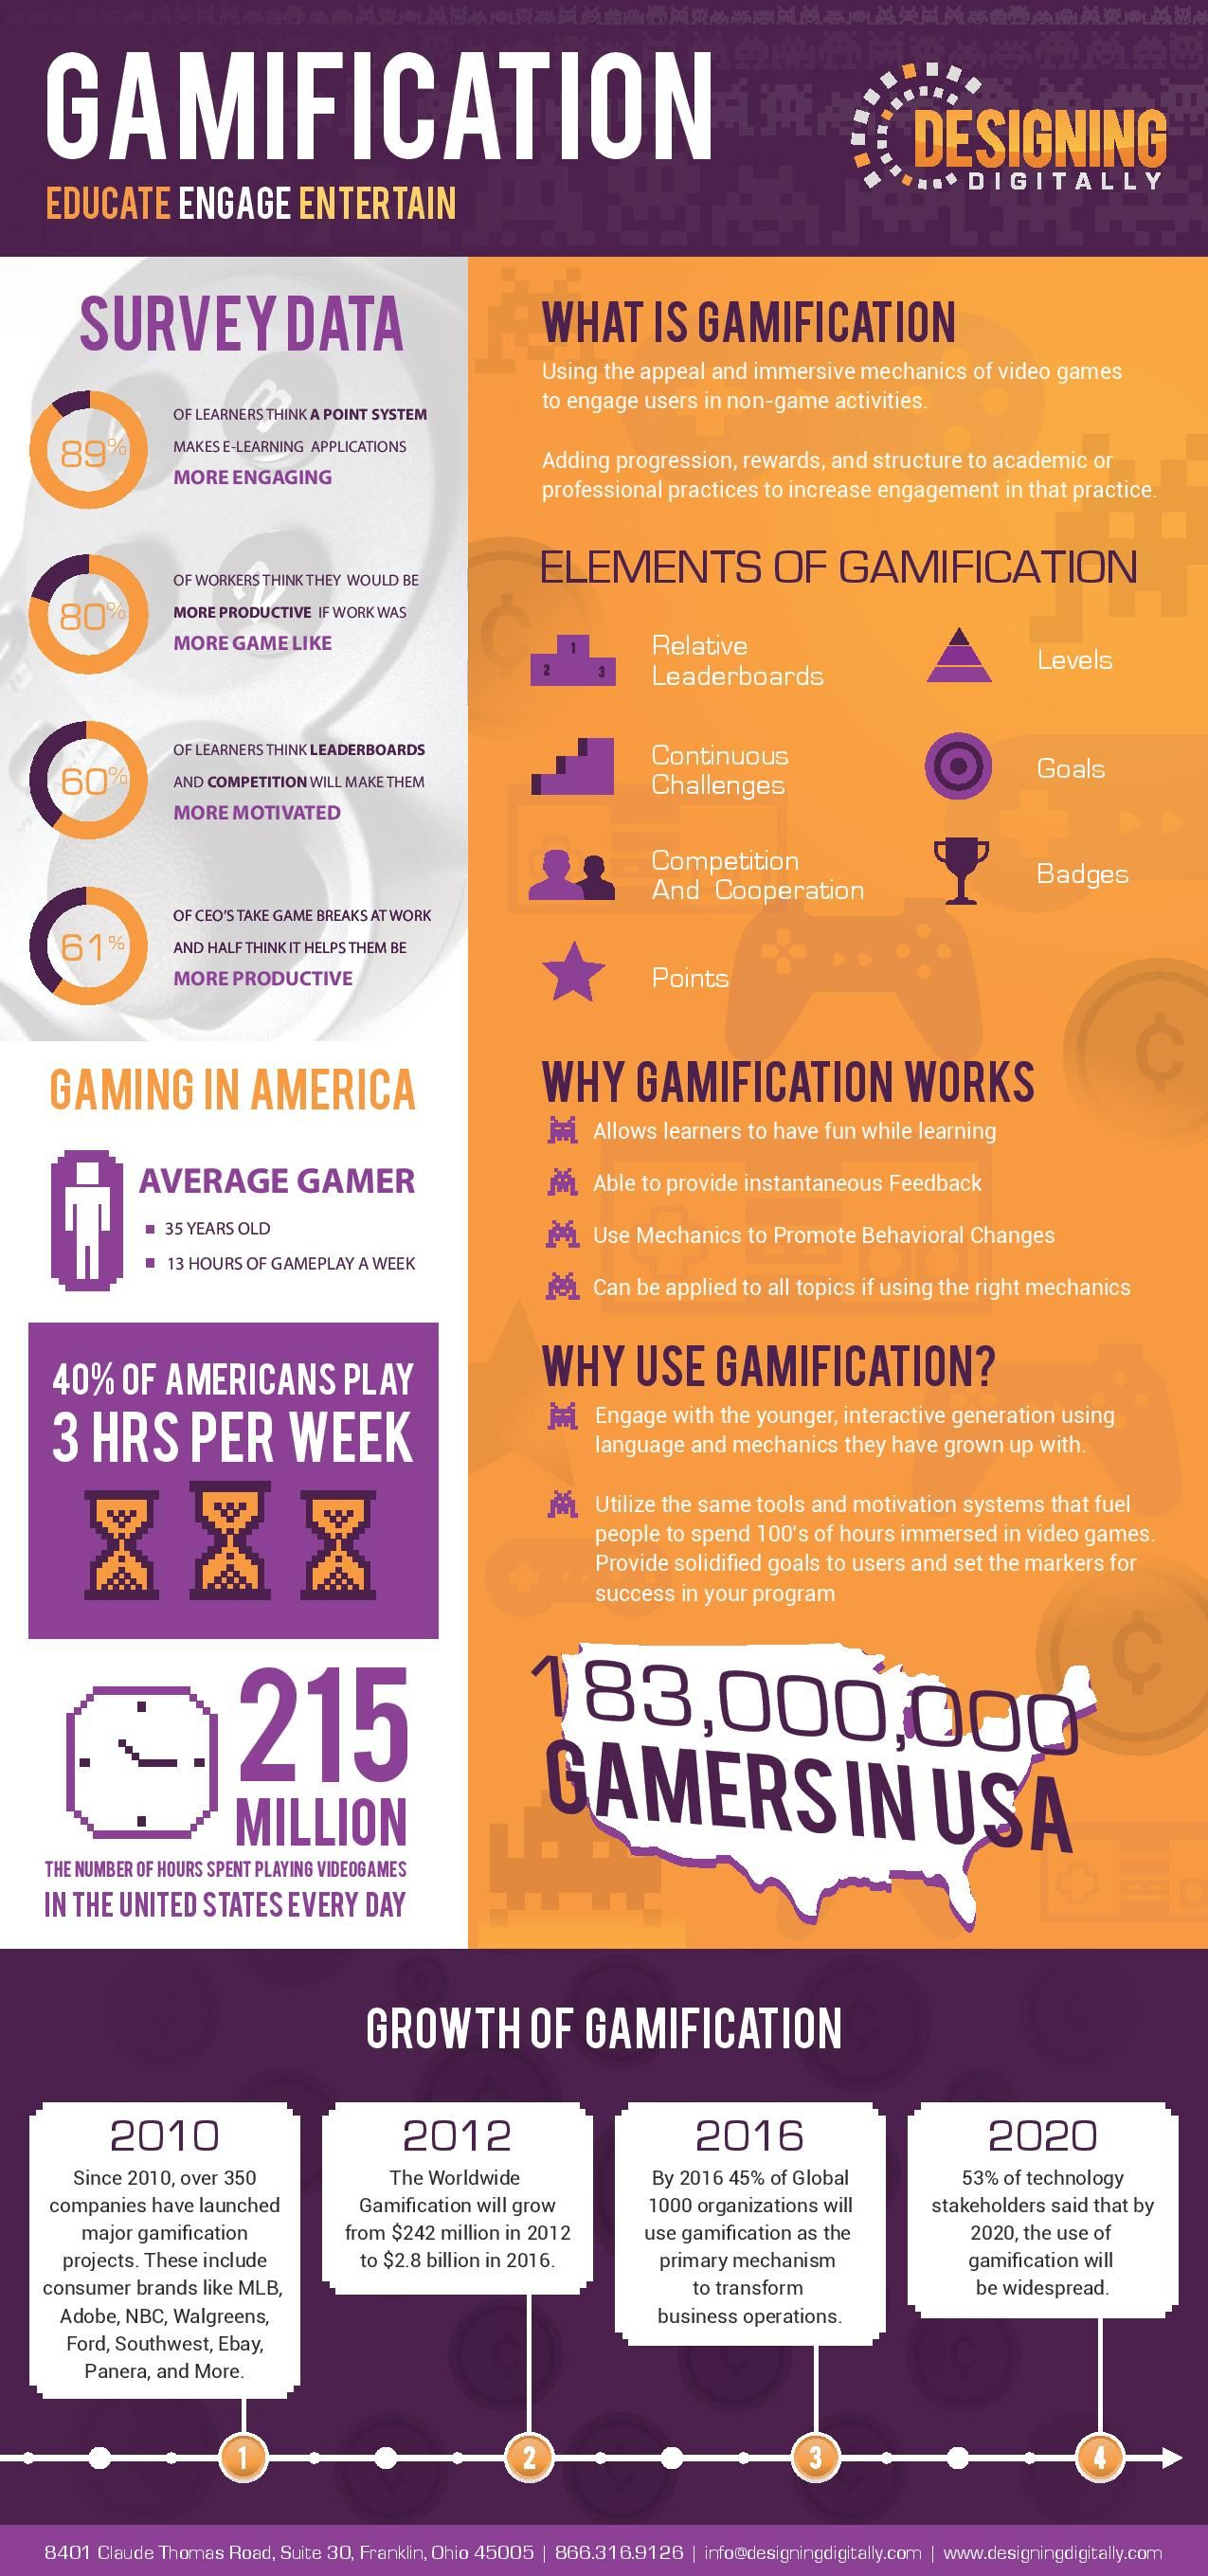 Gamification Educate Engage Entertain Infographic Education